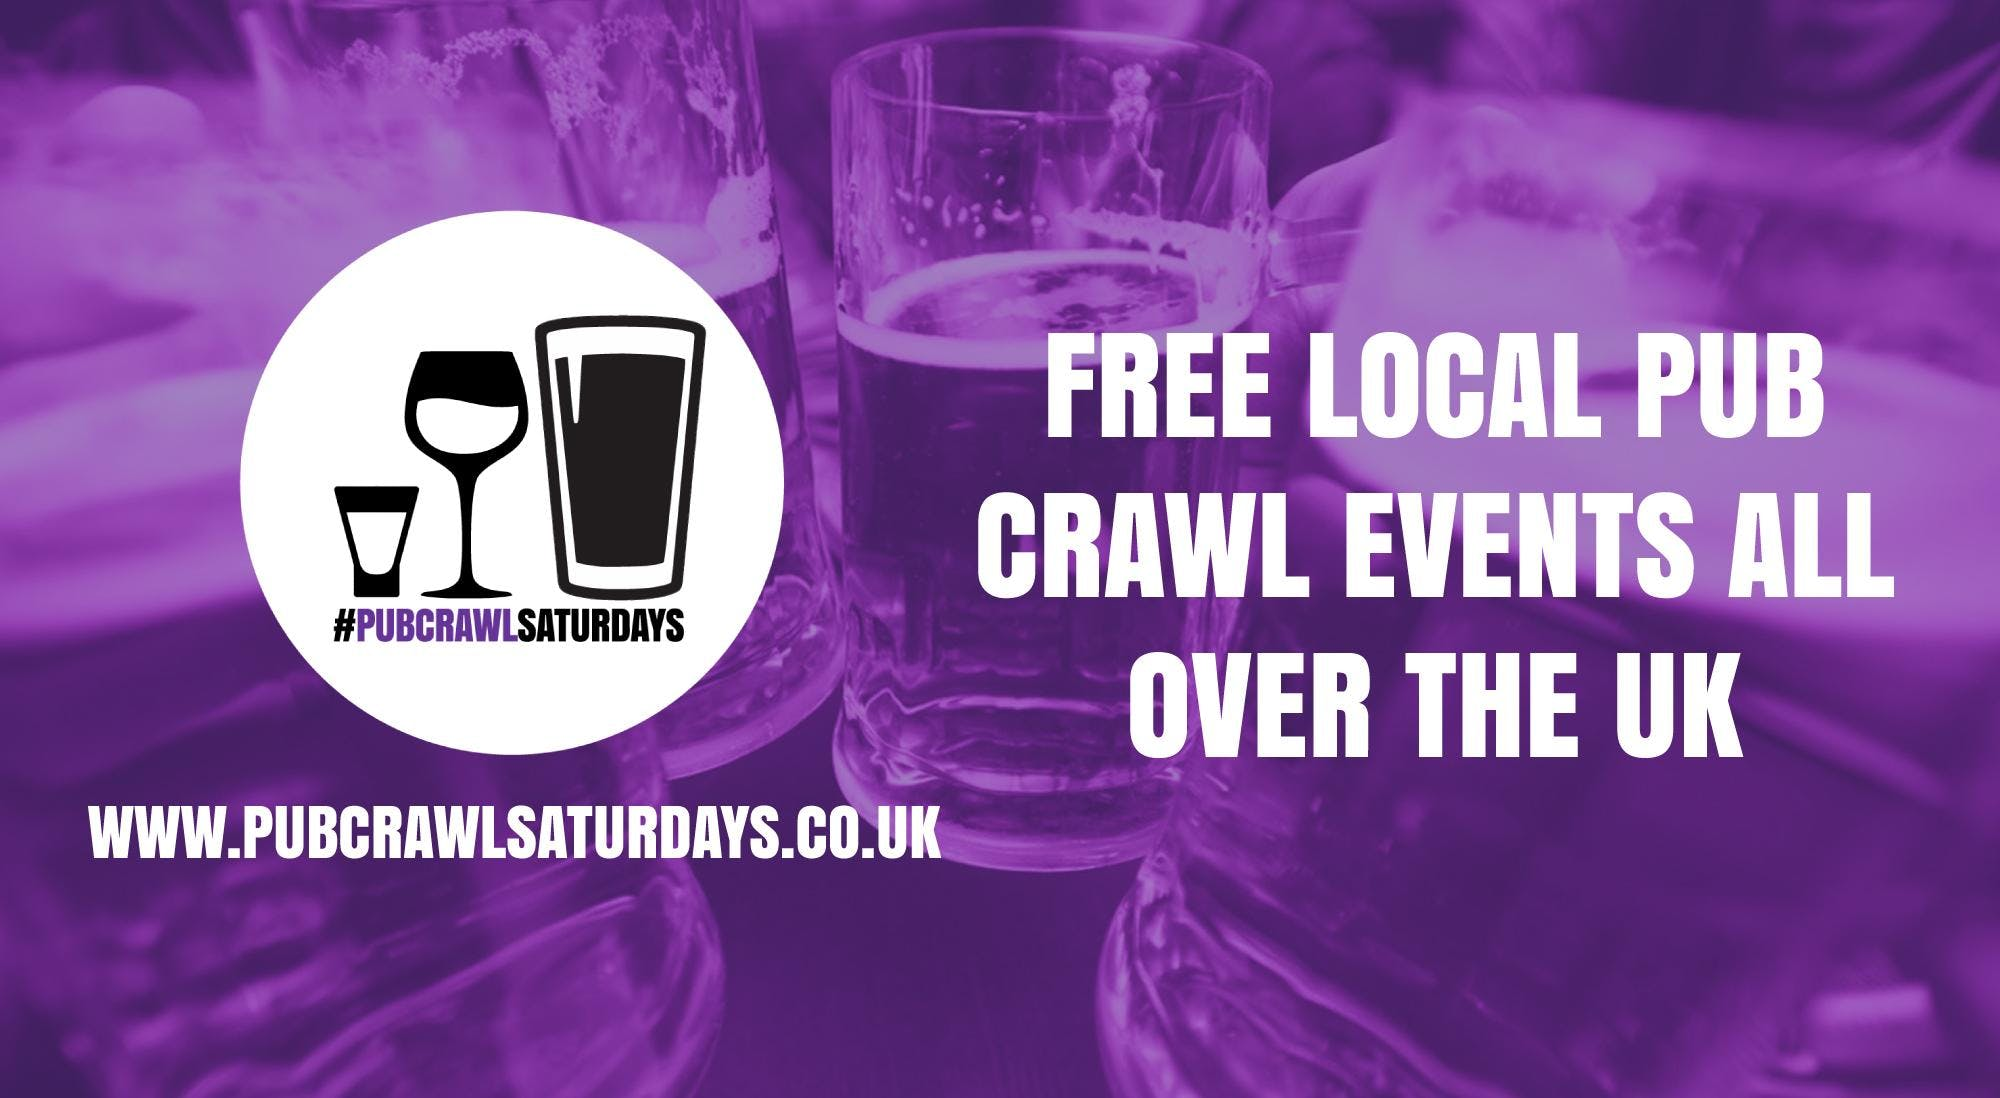 PUB CRAWL SATURDAYS! Free weekly pub crawl event in Huddersfield